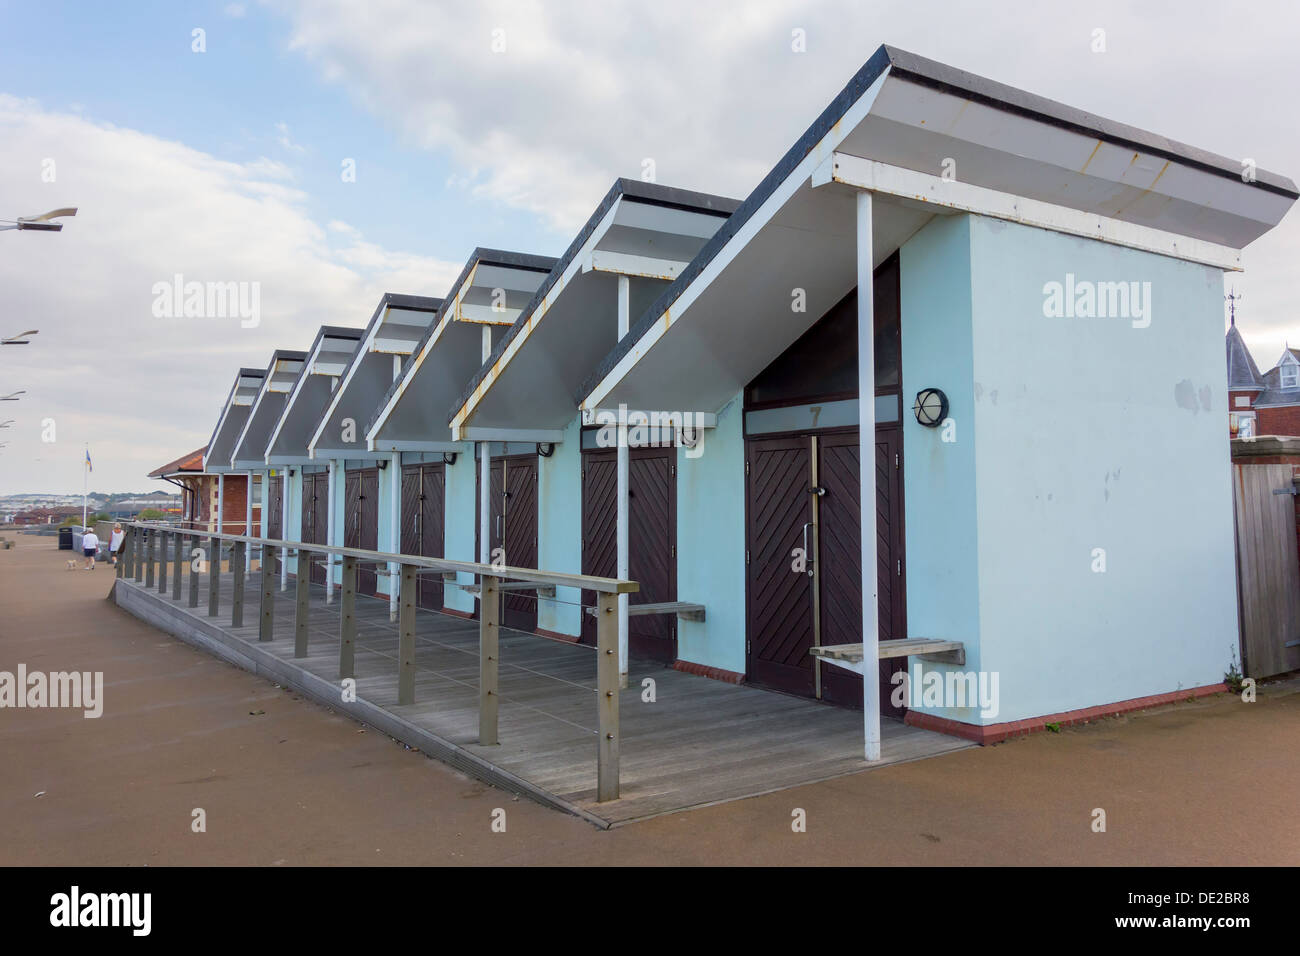 Stock Photo   Unusual Beach Huts Made Of Steel And Concrete With Mono Pitch  Roofs At Hornsea East Yorkshire UK